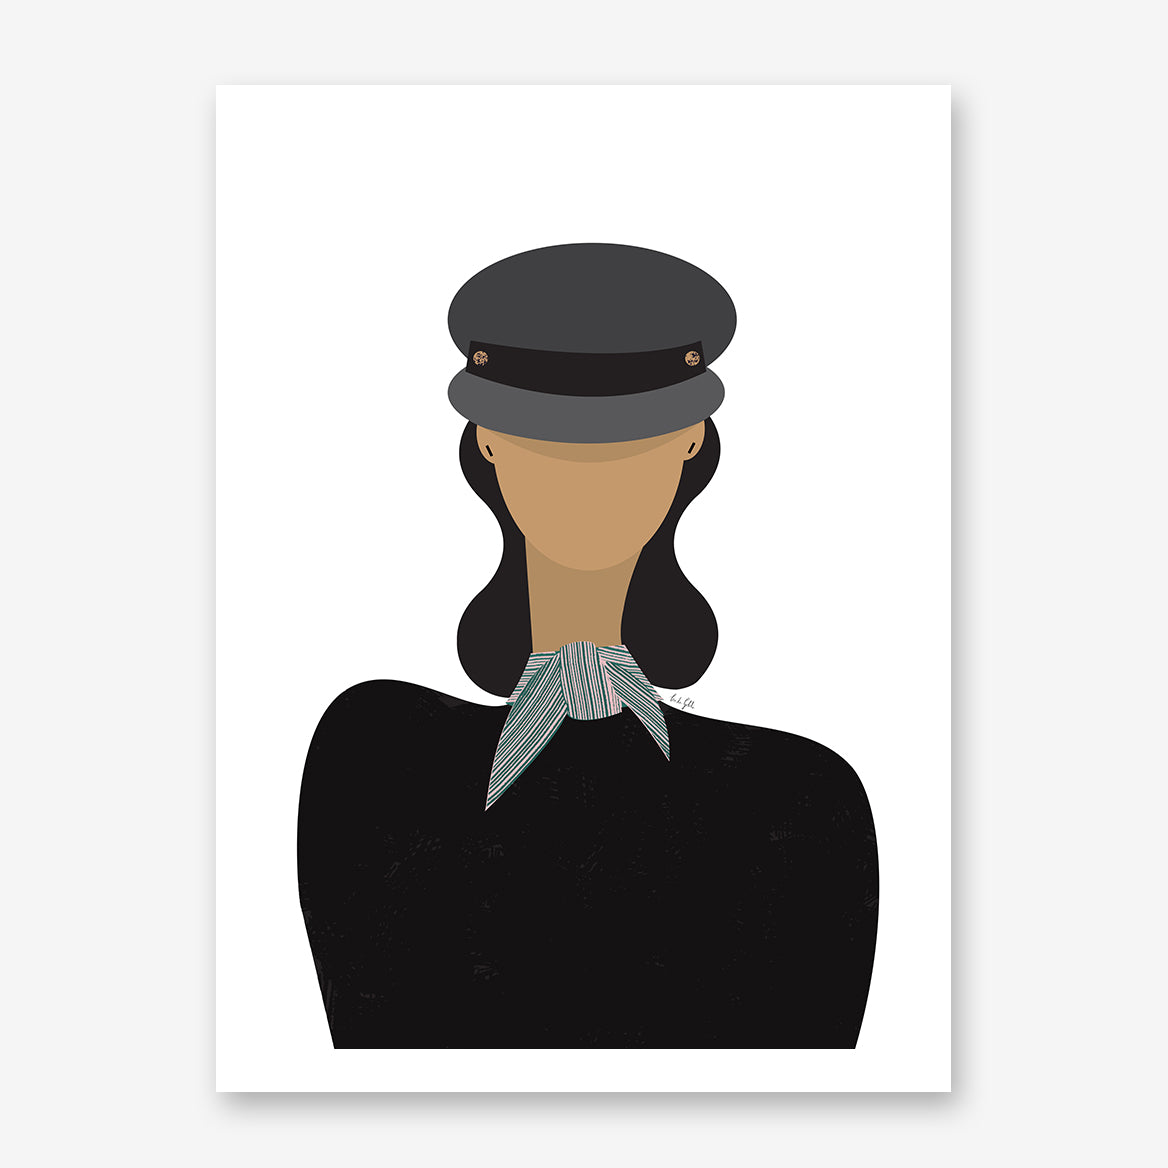 Fashion poster print by Linda Gobeta, with an abstract woman in black, wearing a baker boy hat